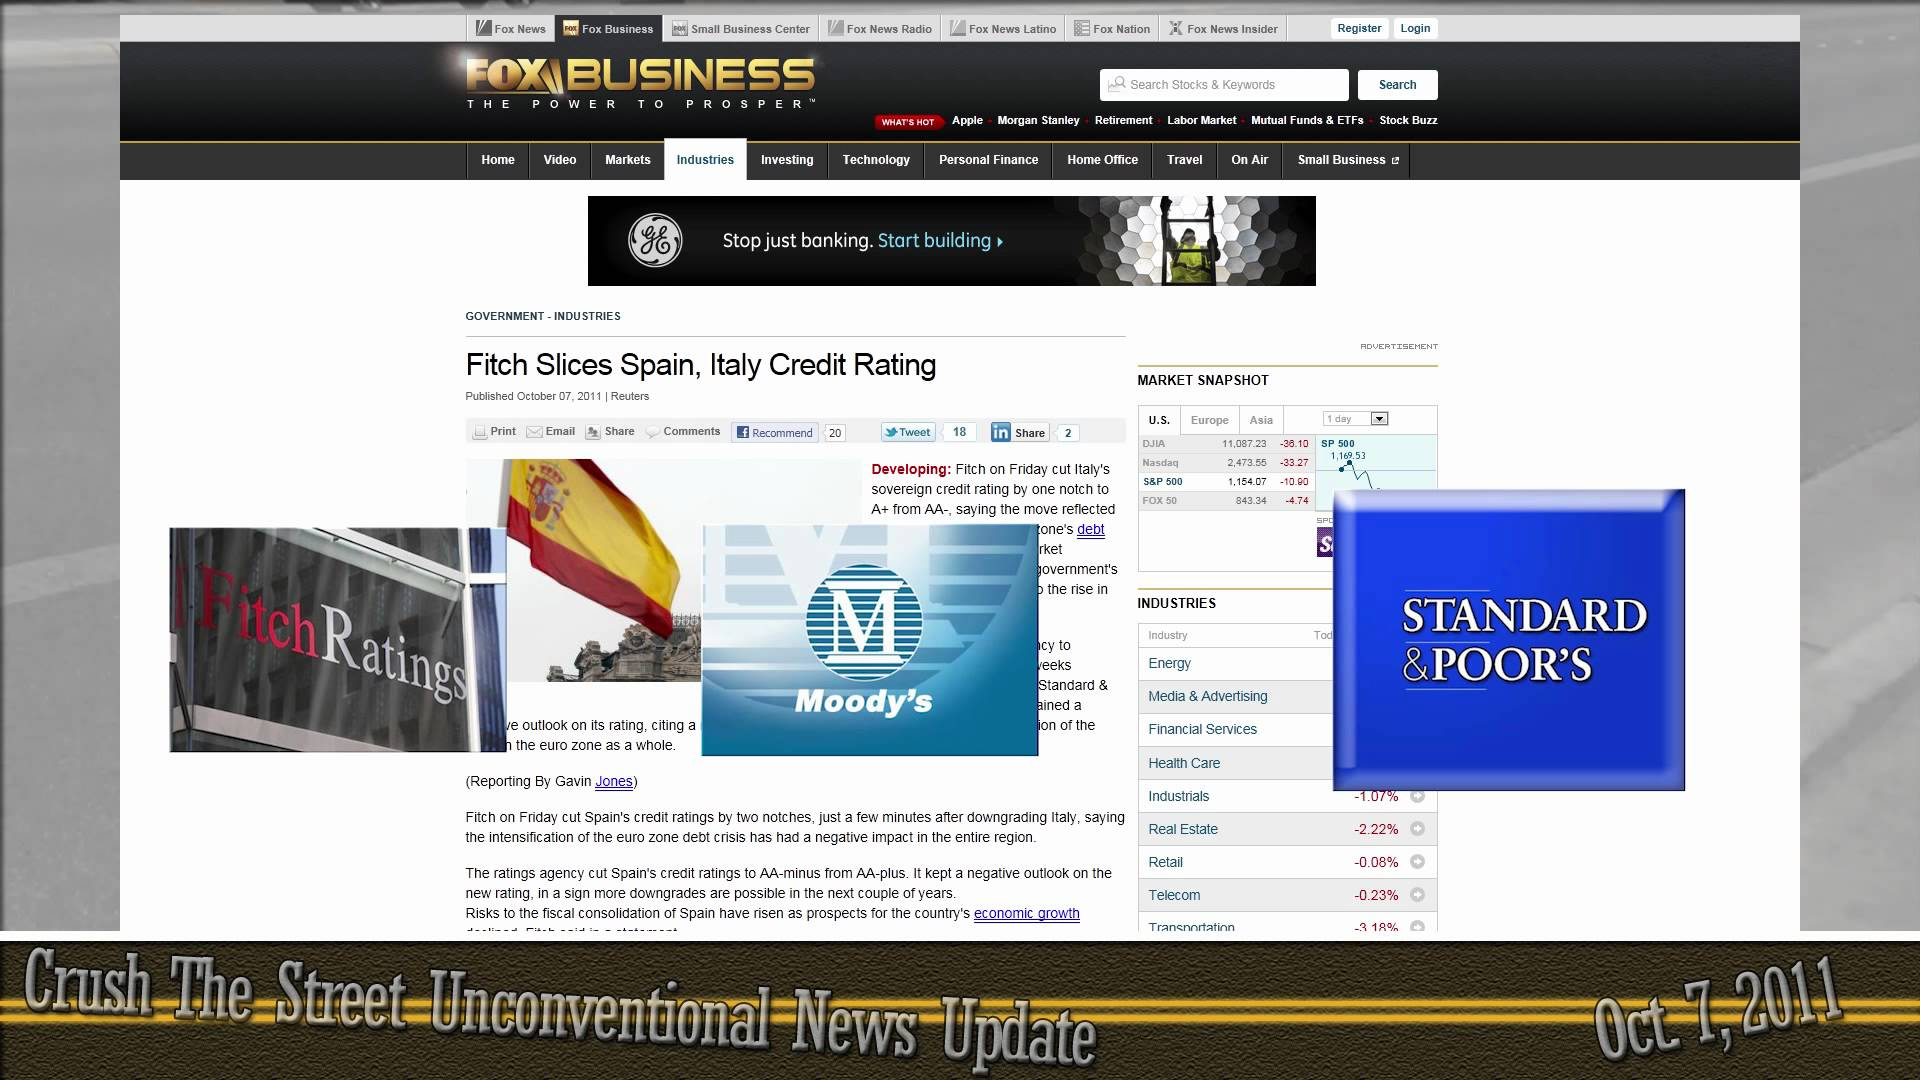 Unconventional News Update for October 7, 2011